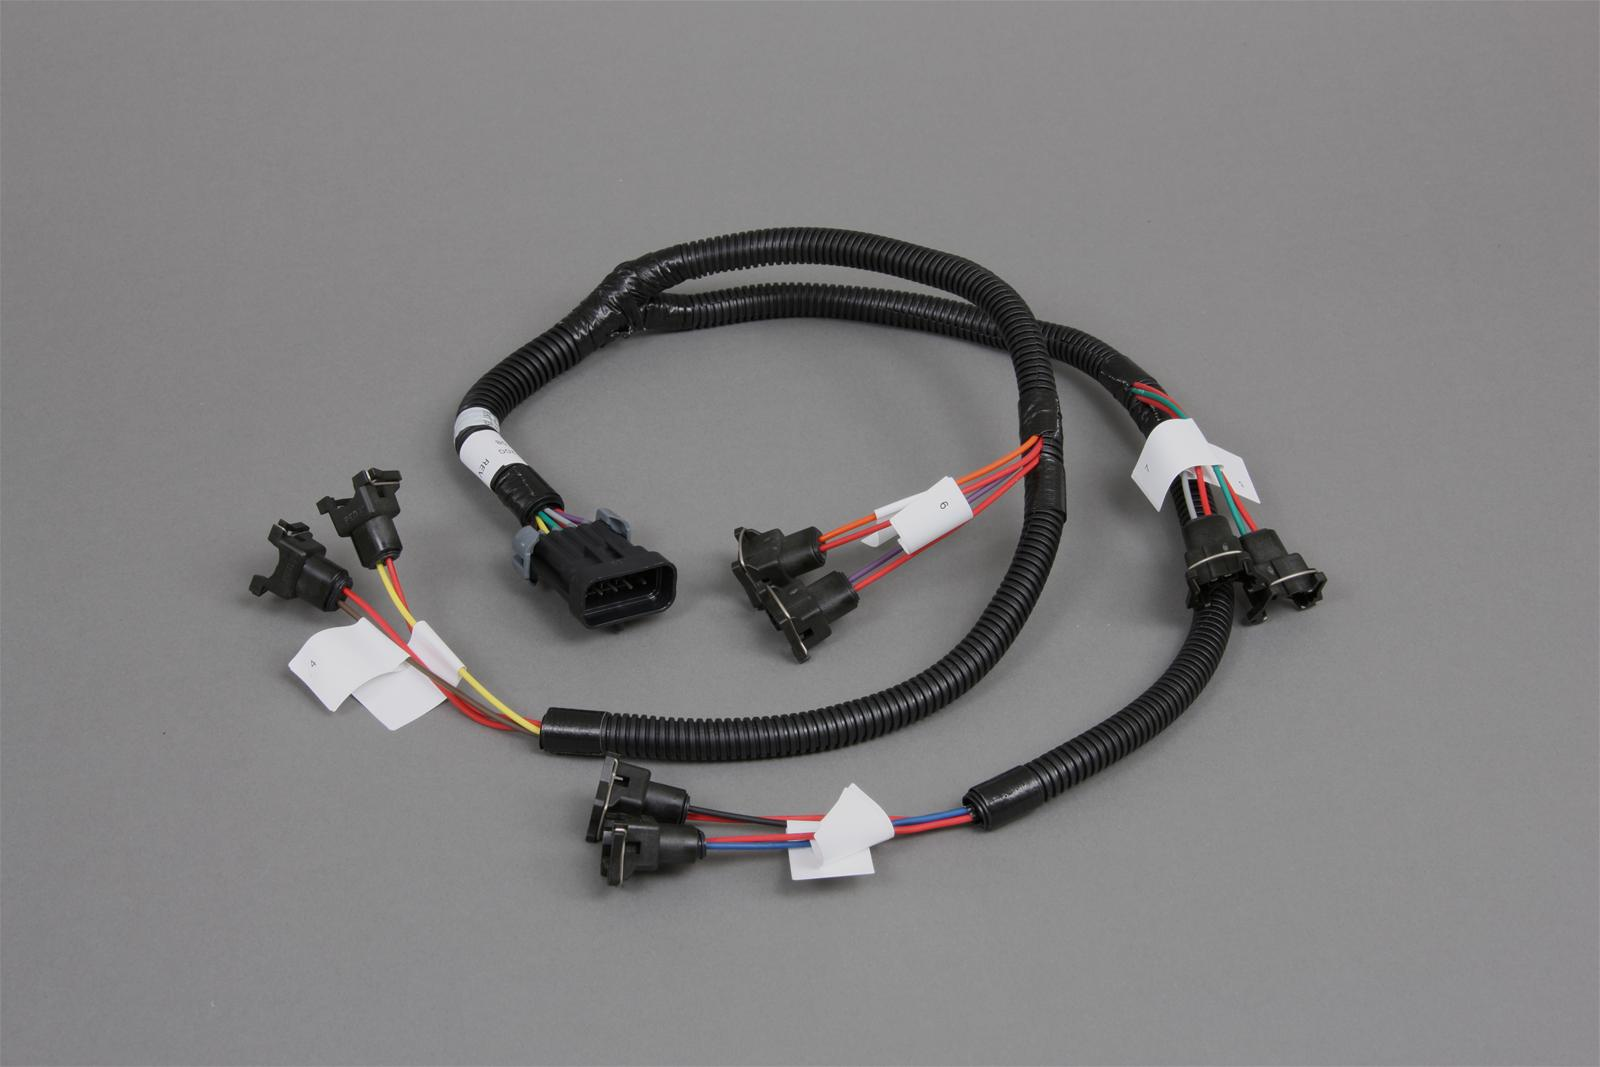 fast wiring harness fuel injector fast xfi chevy 18436572 firing fast fuel injector wiring harness 301200